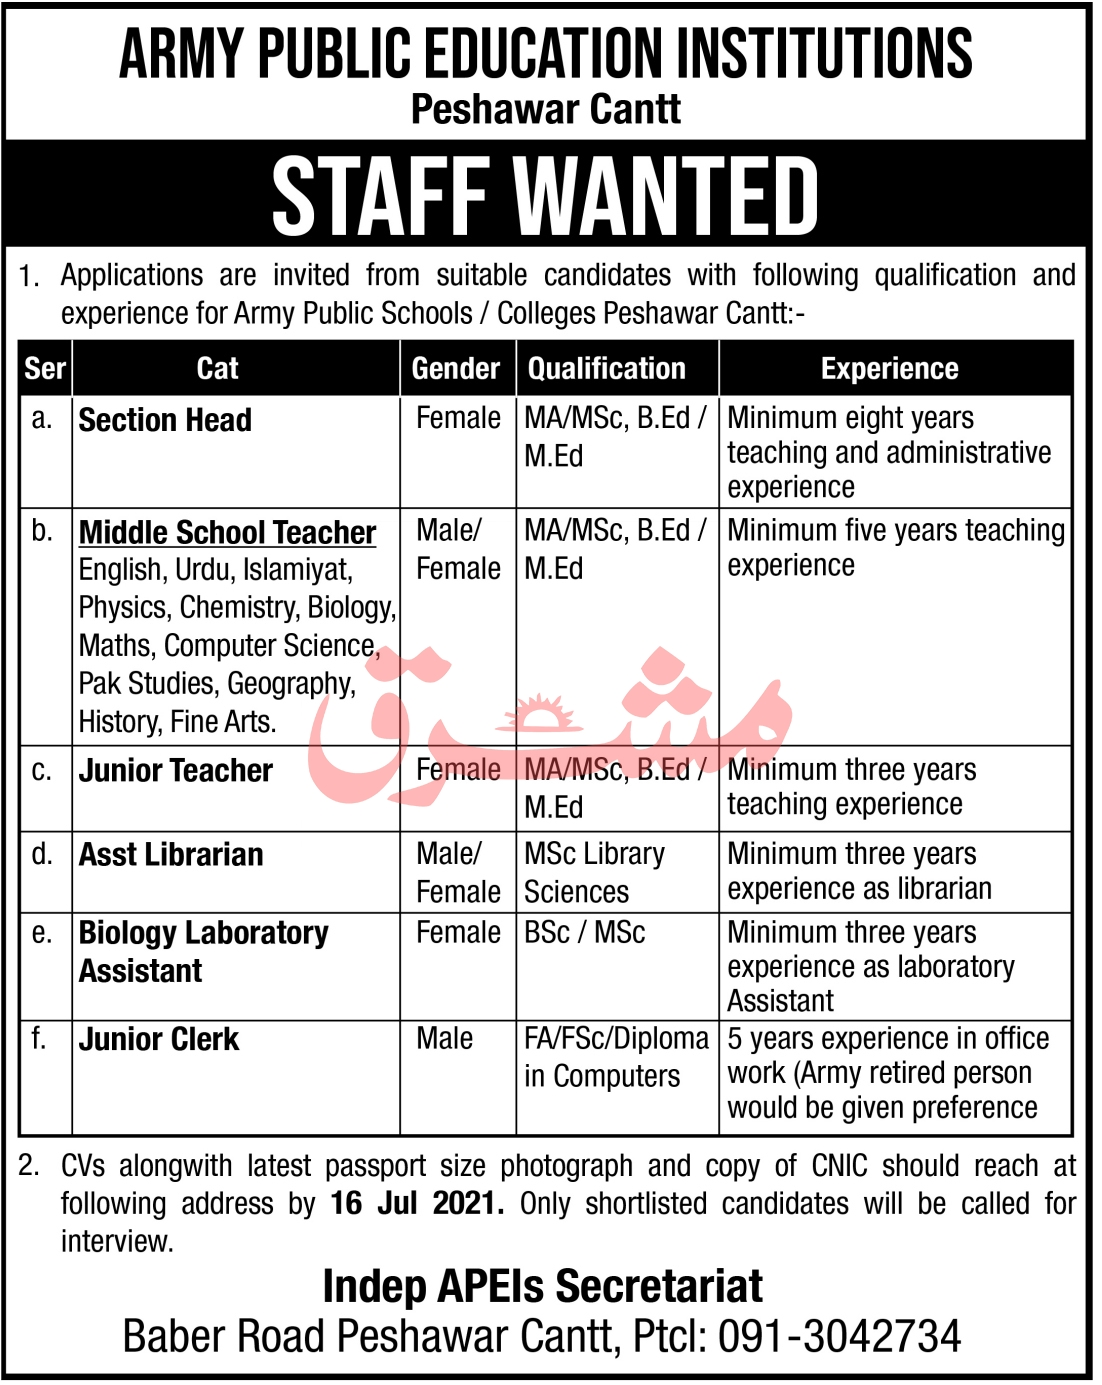 Army Public Education Institutions Peshawar Cantt Jobs 2021 in Pakistan